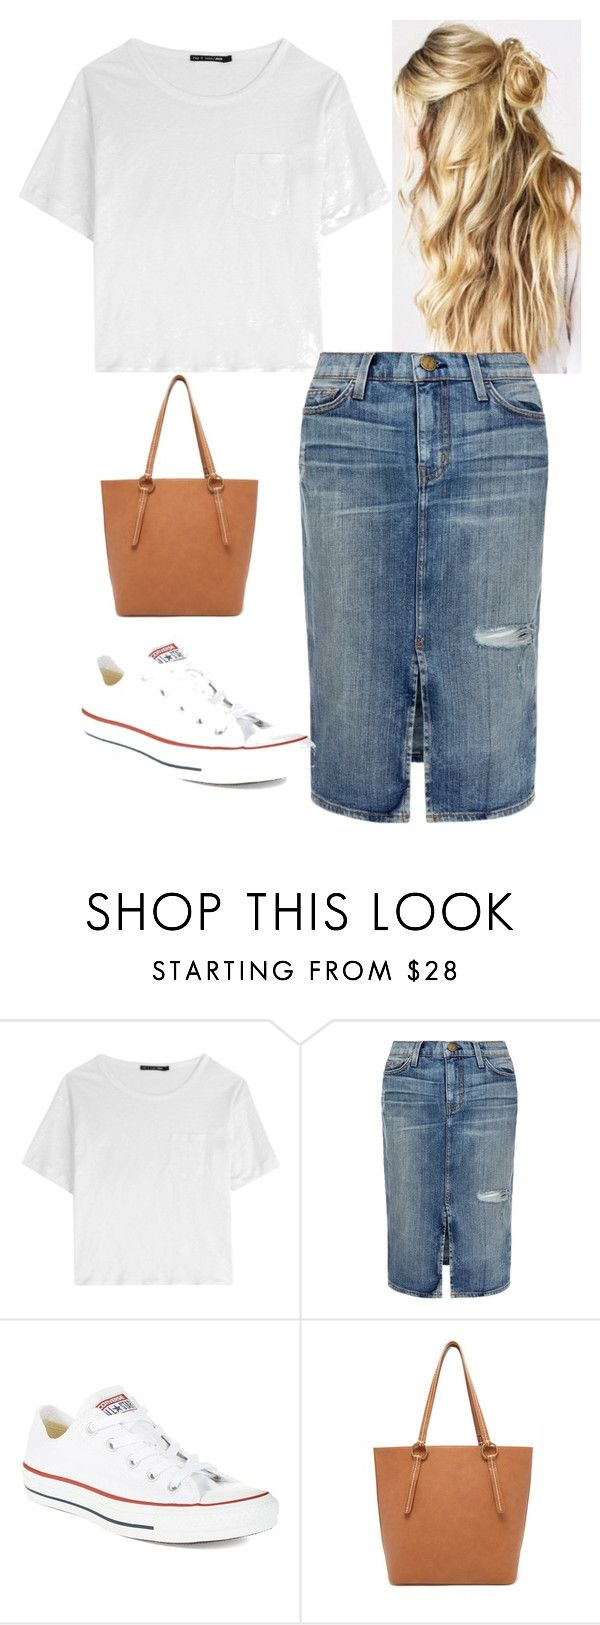 Casual Chic by apostolicgirl85 on Polyvore featuring rag & bone, Current/Elliott, Converse, Forever 21, women's clothing, women's fashion, women, female, woman and misses